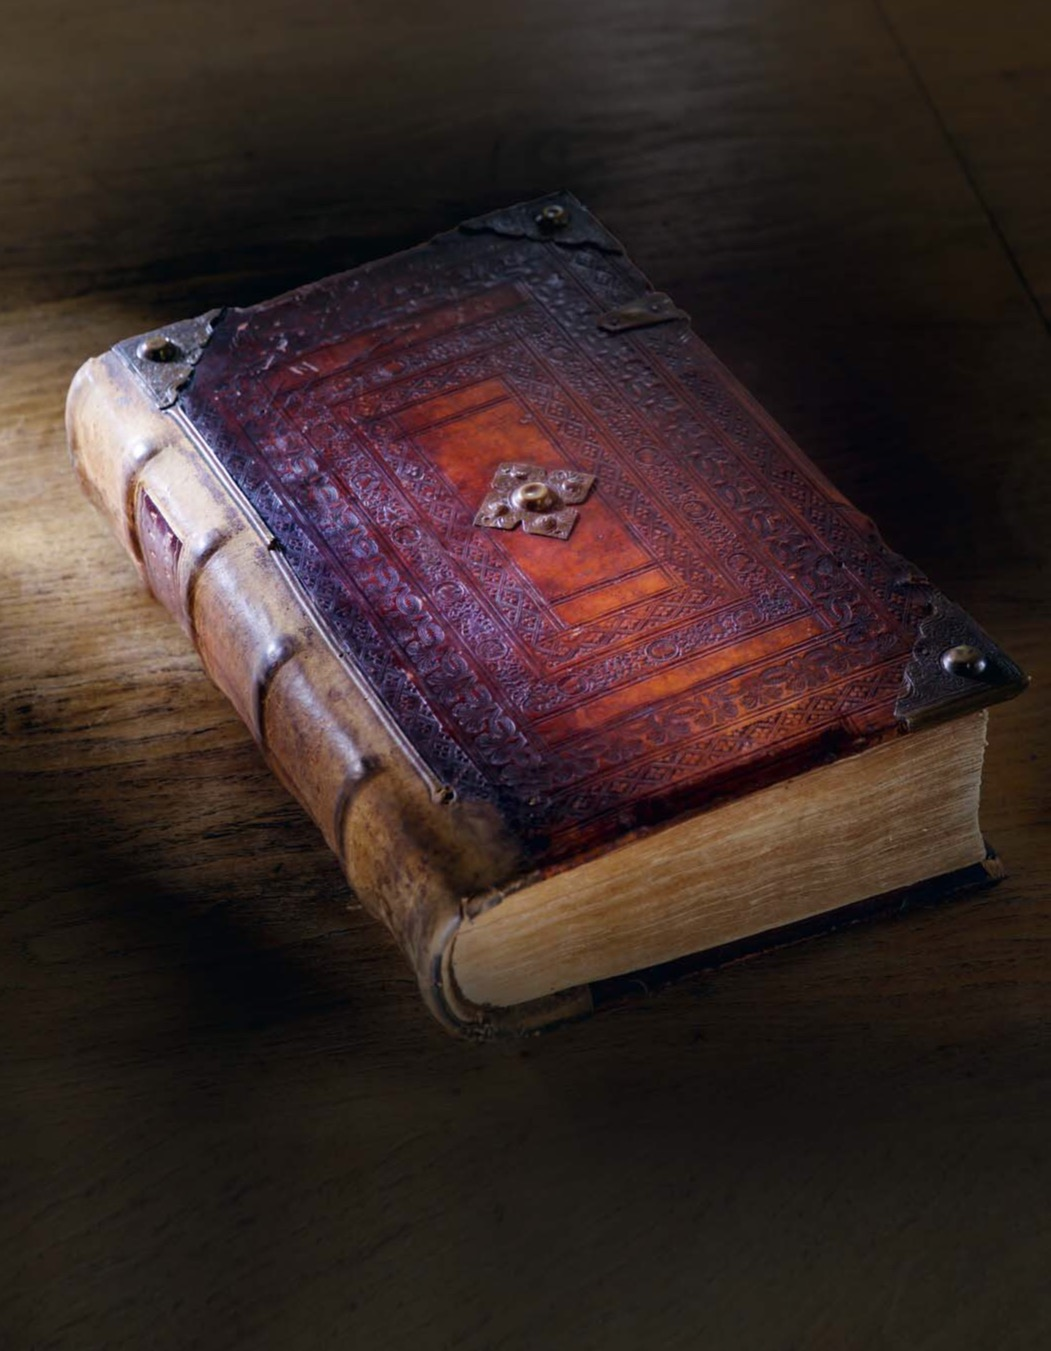 The Bible—Accurate in All Respects - Interchange of